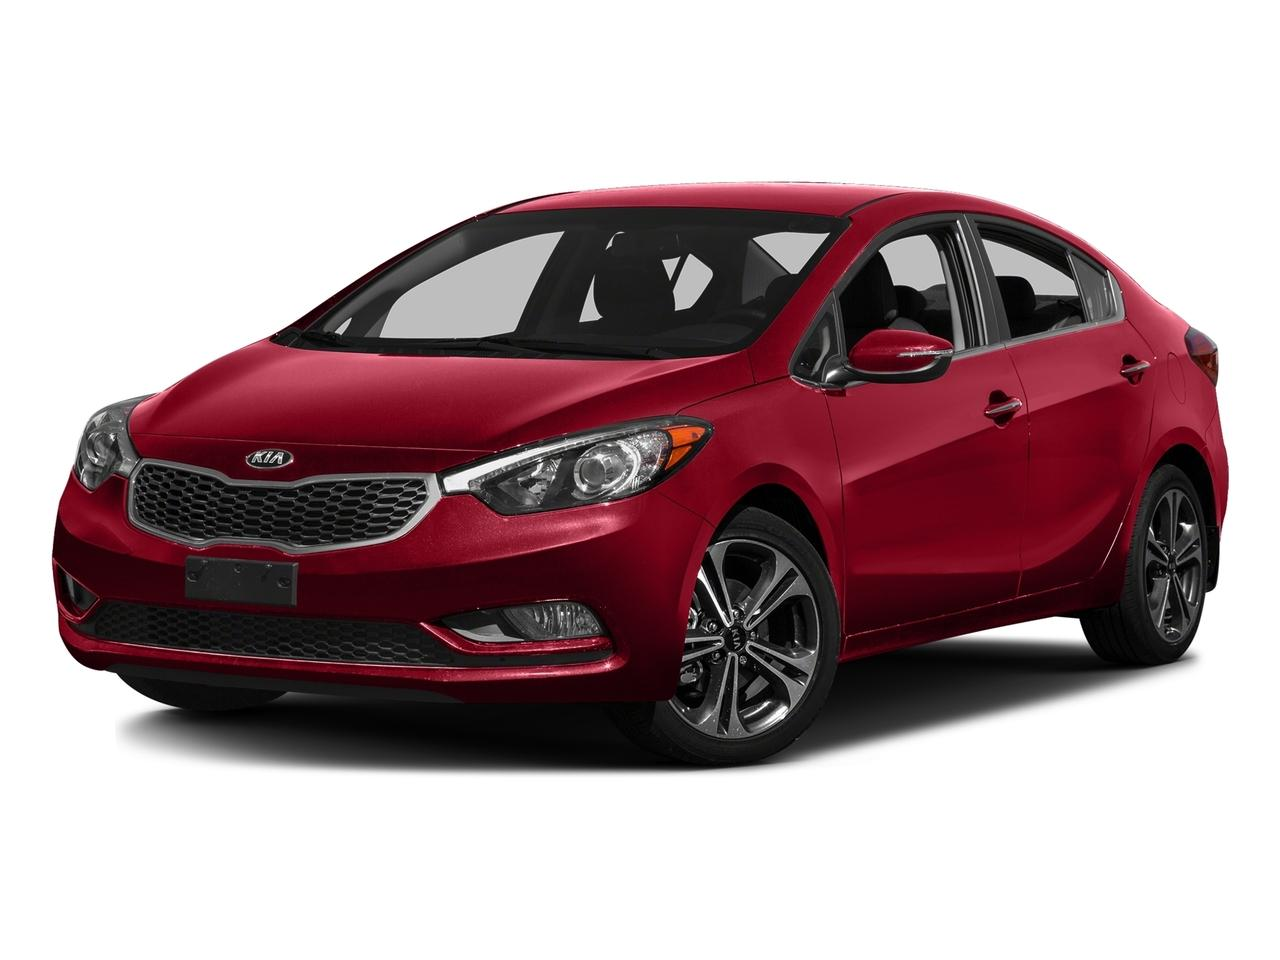 2016 Kia Forte Vehicle Photo in Bowie, MD 20716